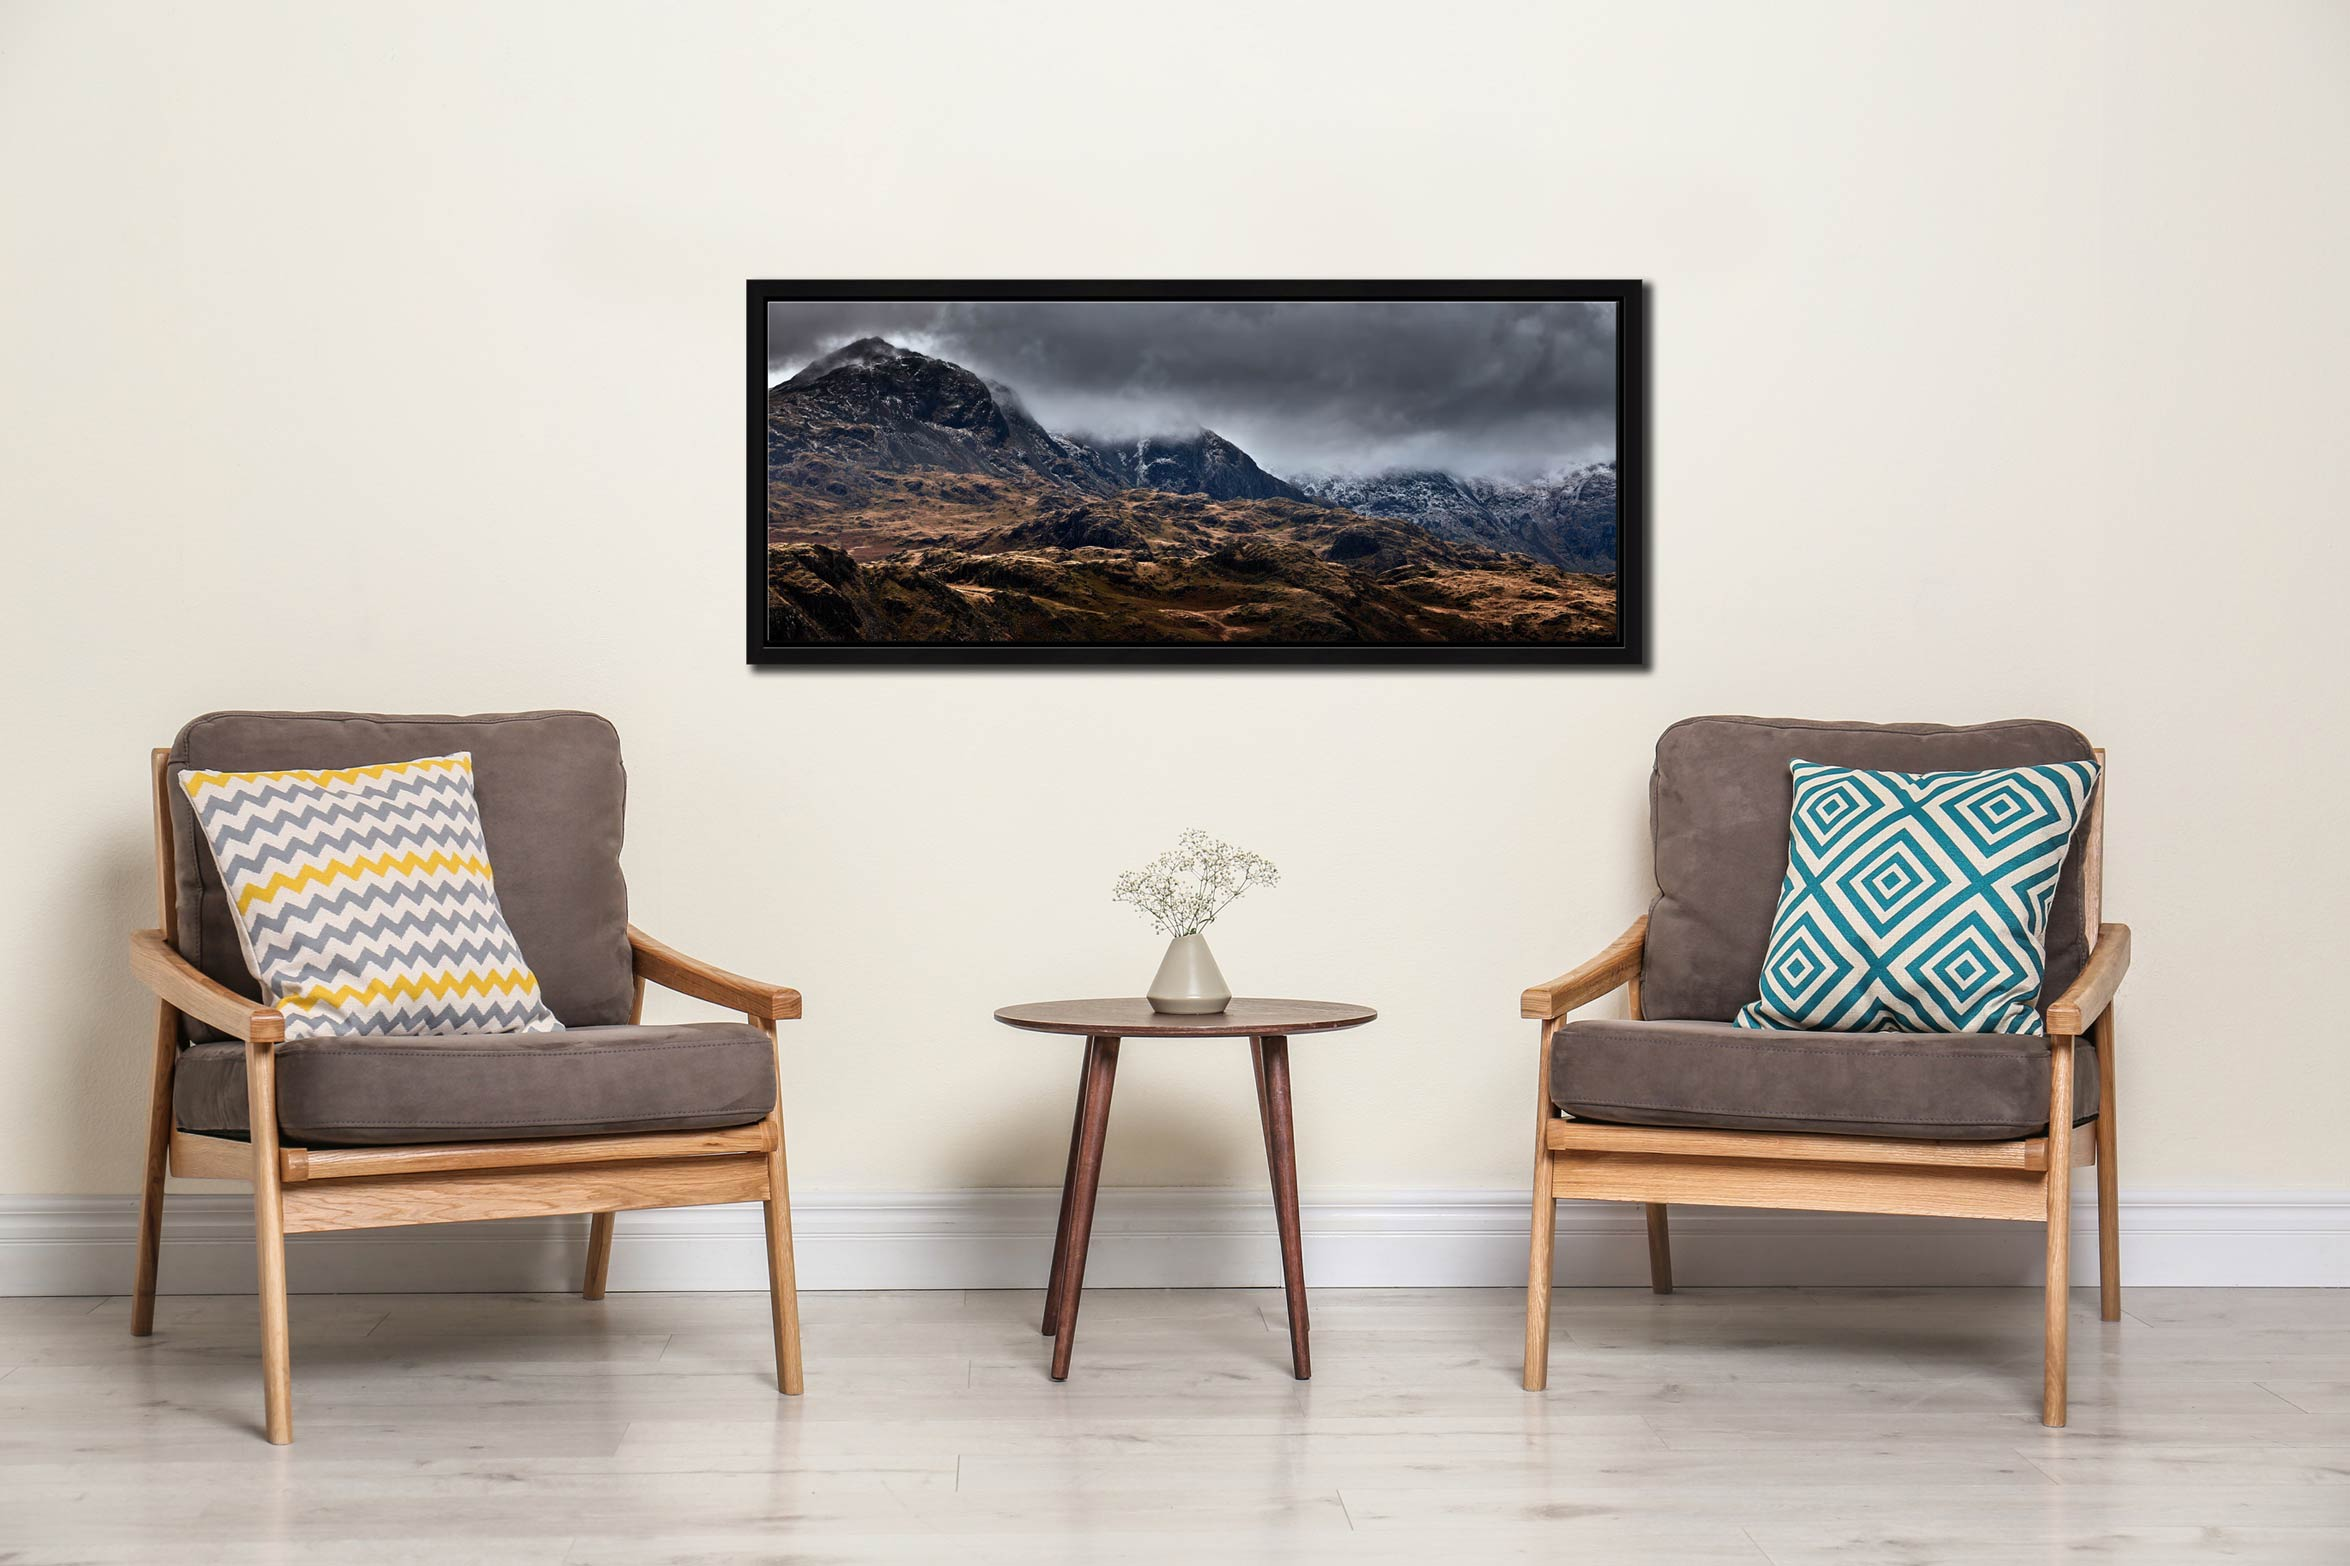 View from the fells above Hardknott Fort looking toward the Sca Fell mountain range on a bleak winter's morning in Eskdale, Cumbria - Black oak floater frame with acrylic glazing on Wall